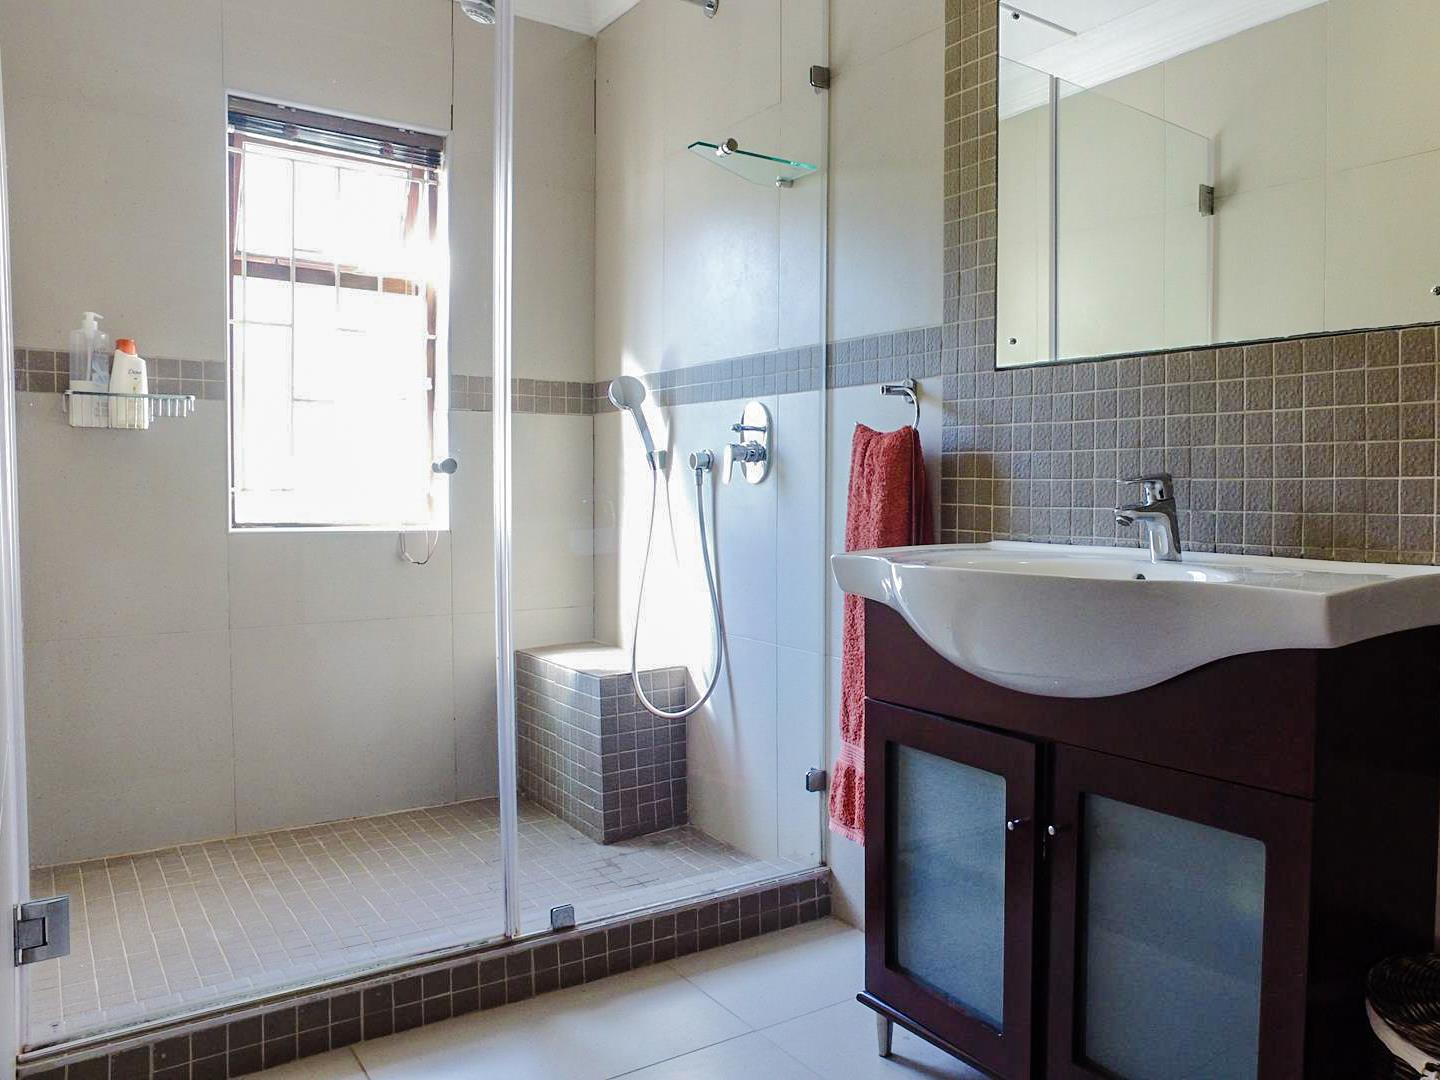 4 Bedroom House For Sale in Old Place